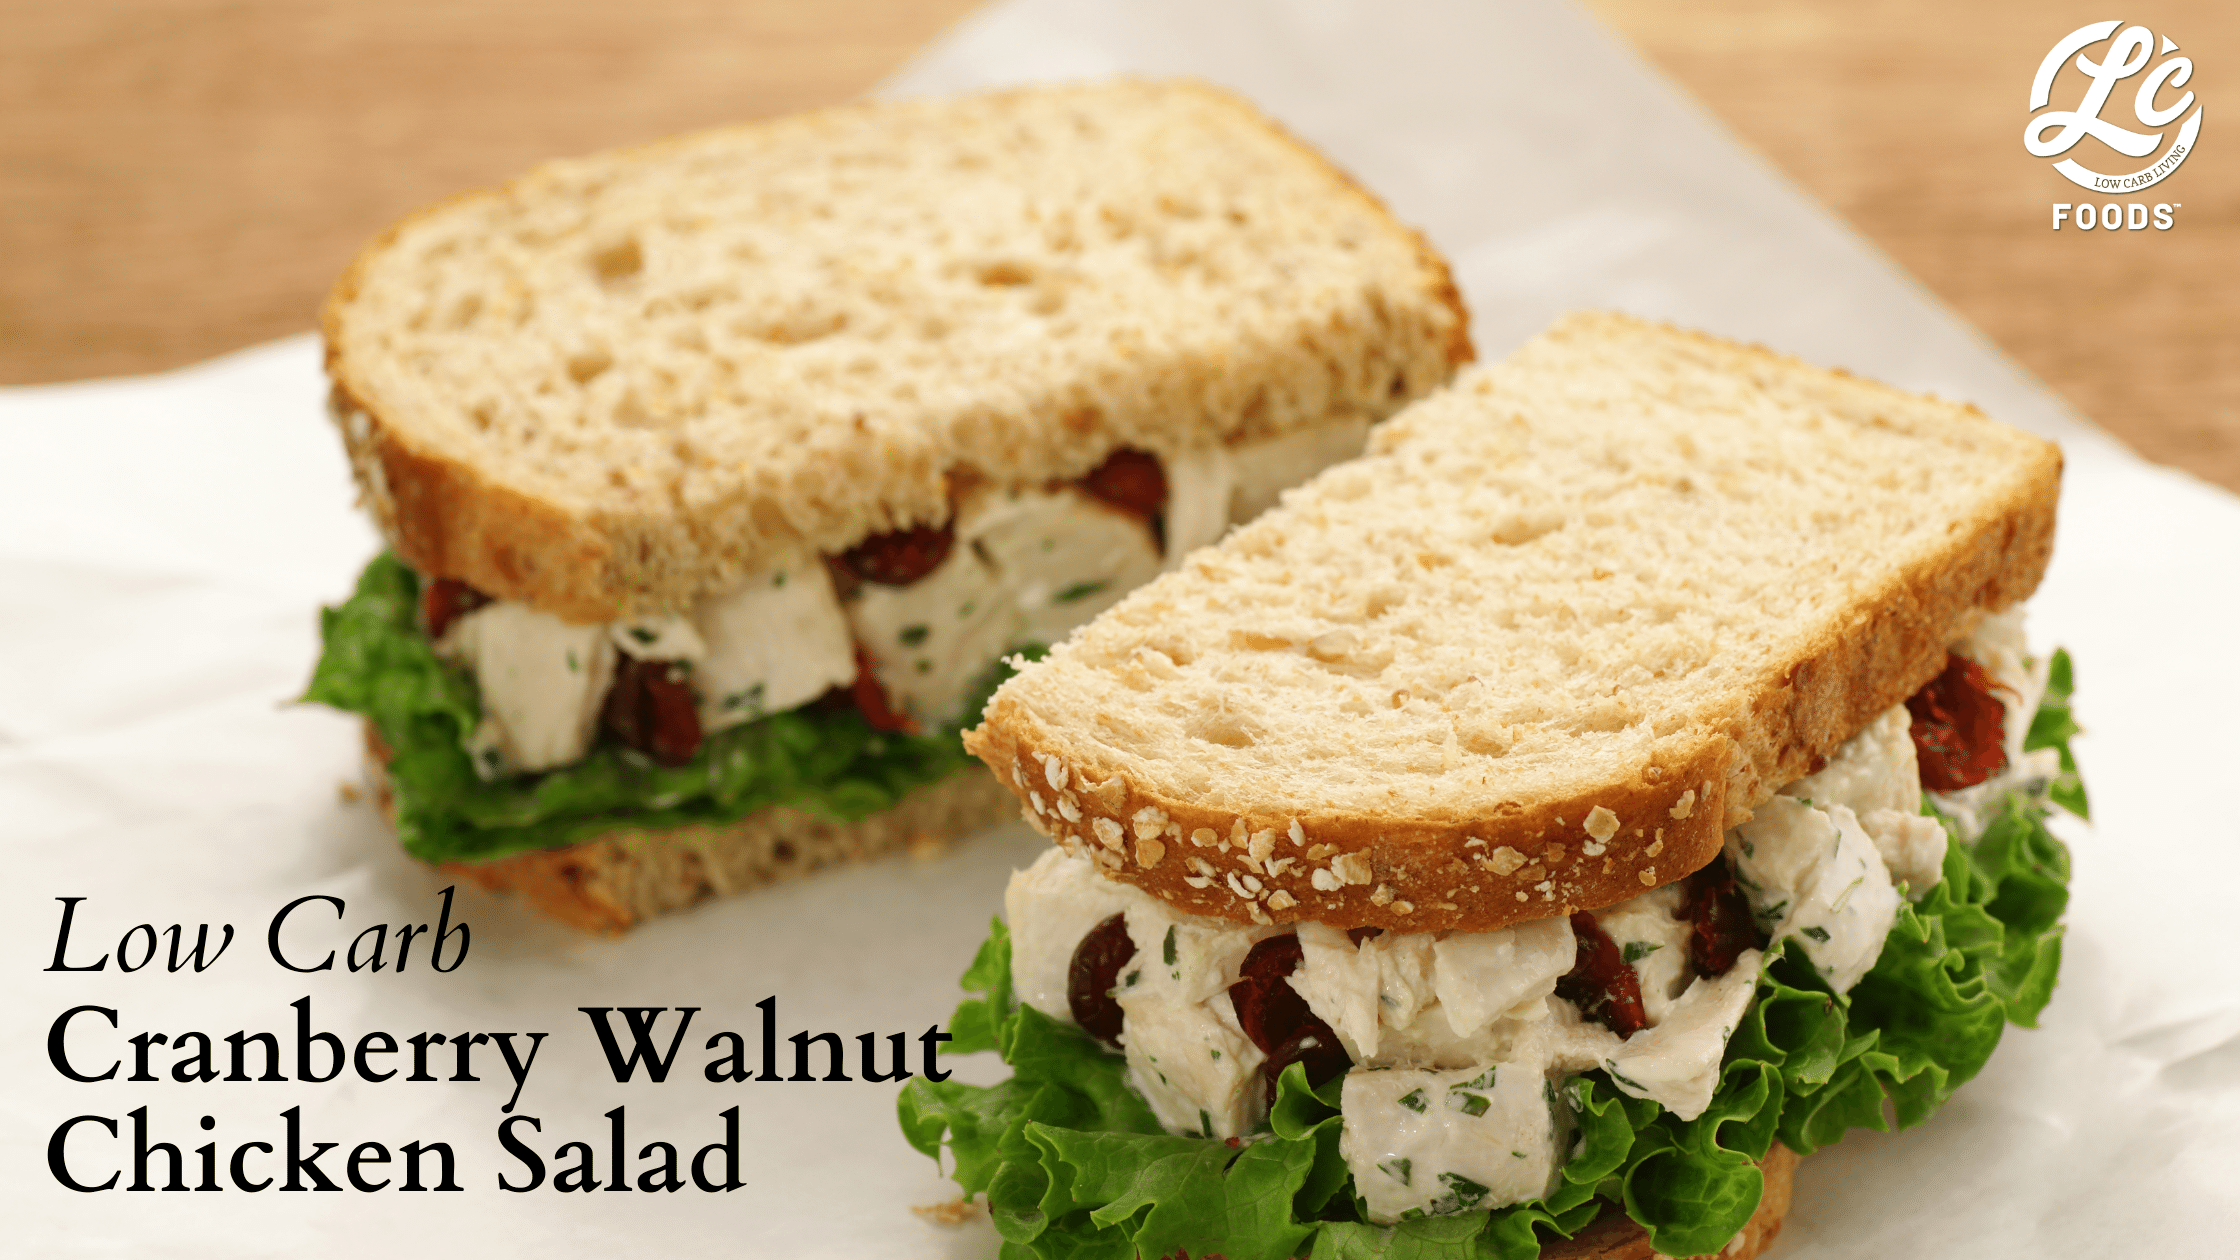 Thumbnail for Low Carb Cranberry Walnut Chicken Salad